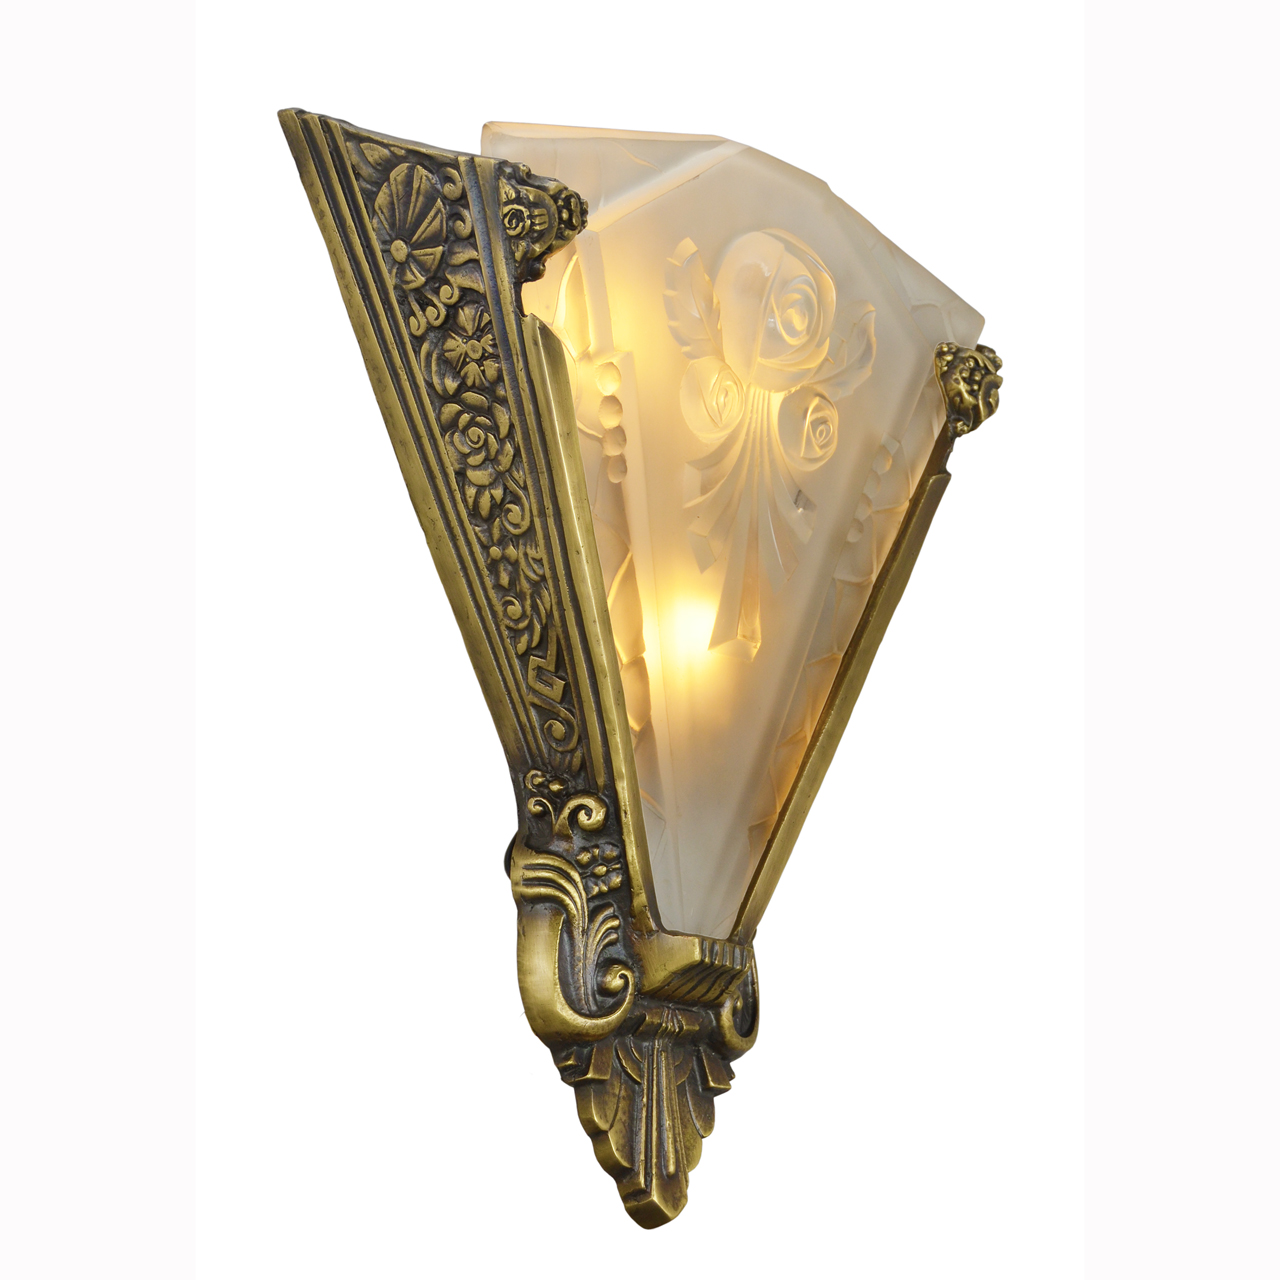 Pair of Large Wall Sconces Lighting with Antique French Shades (ANT-400) For Sale Antiques.com ...